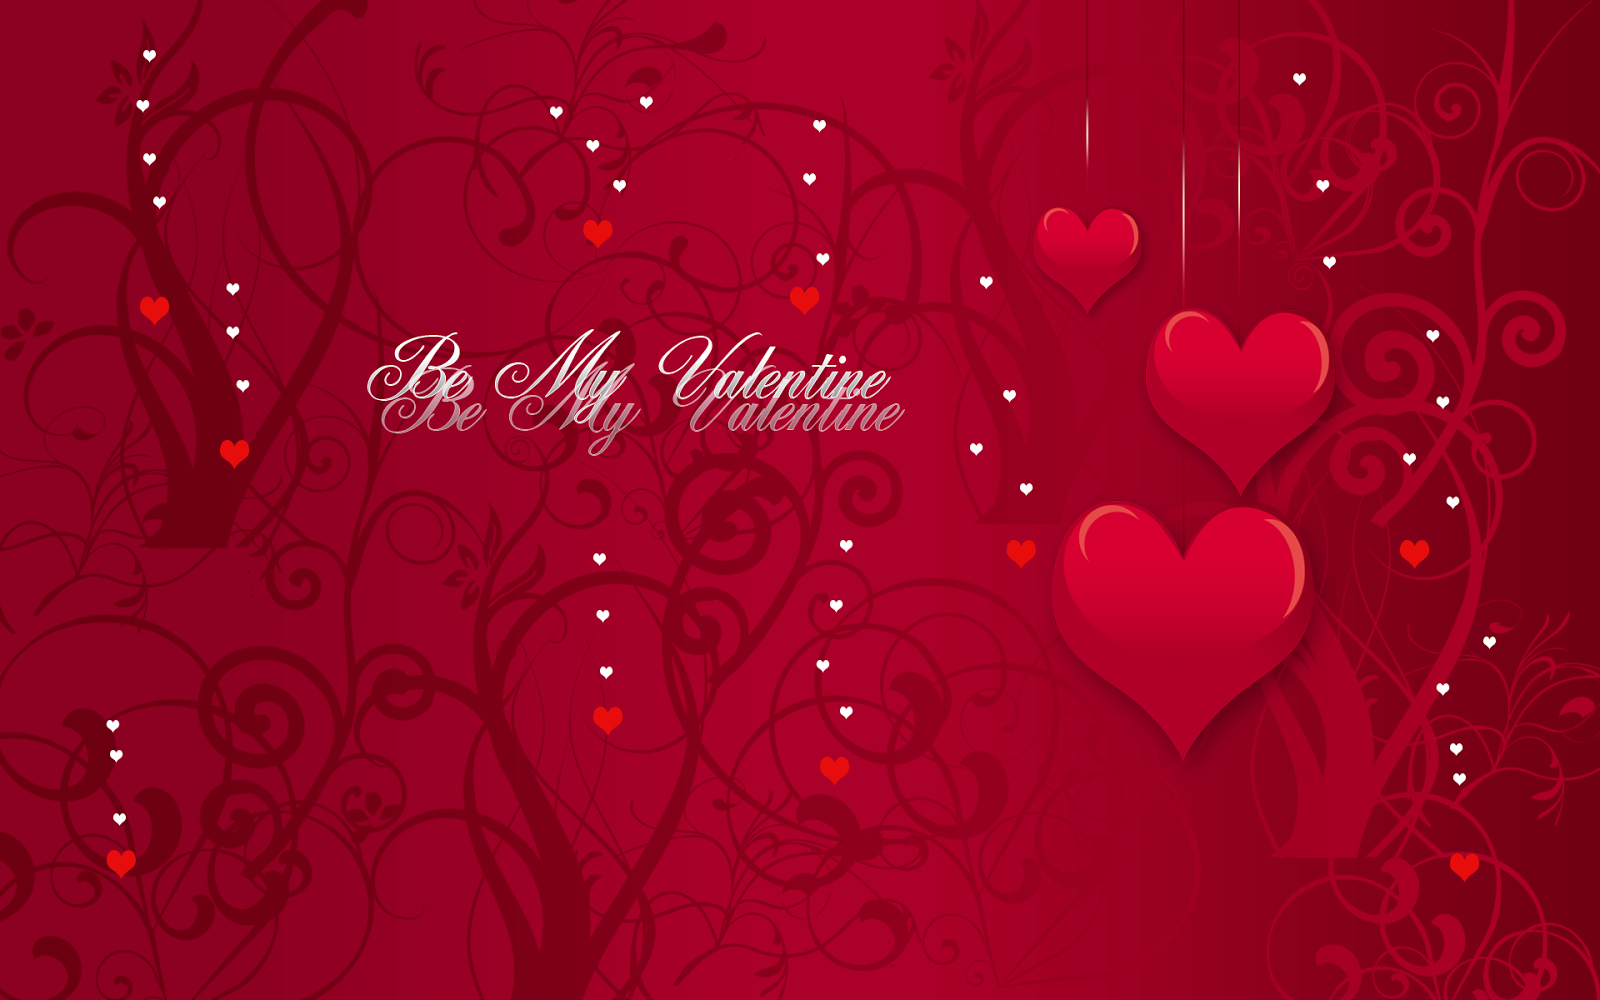 Be-My-Valentine-Text-image-Red-Background-with-Hearts-floral-designs.png